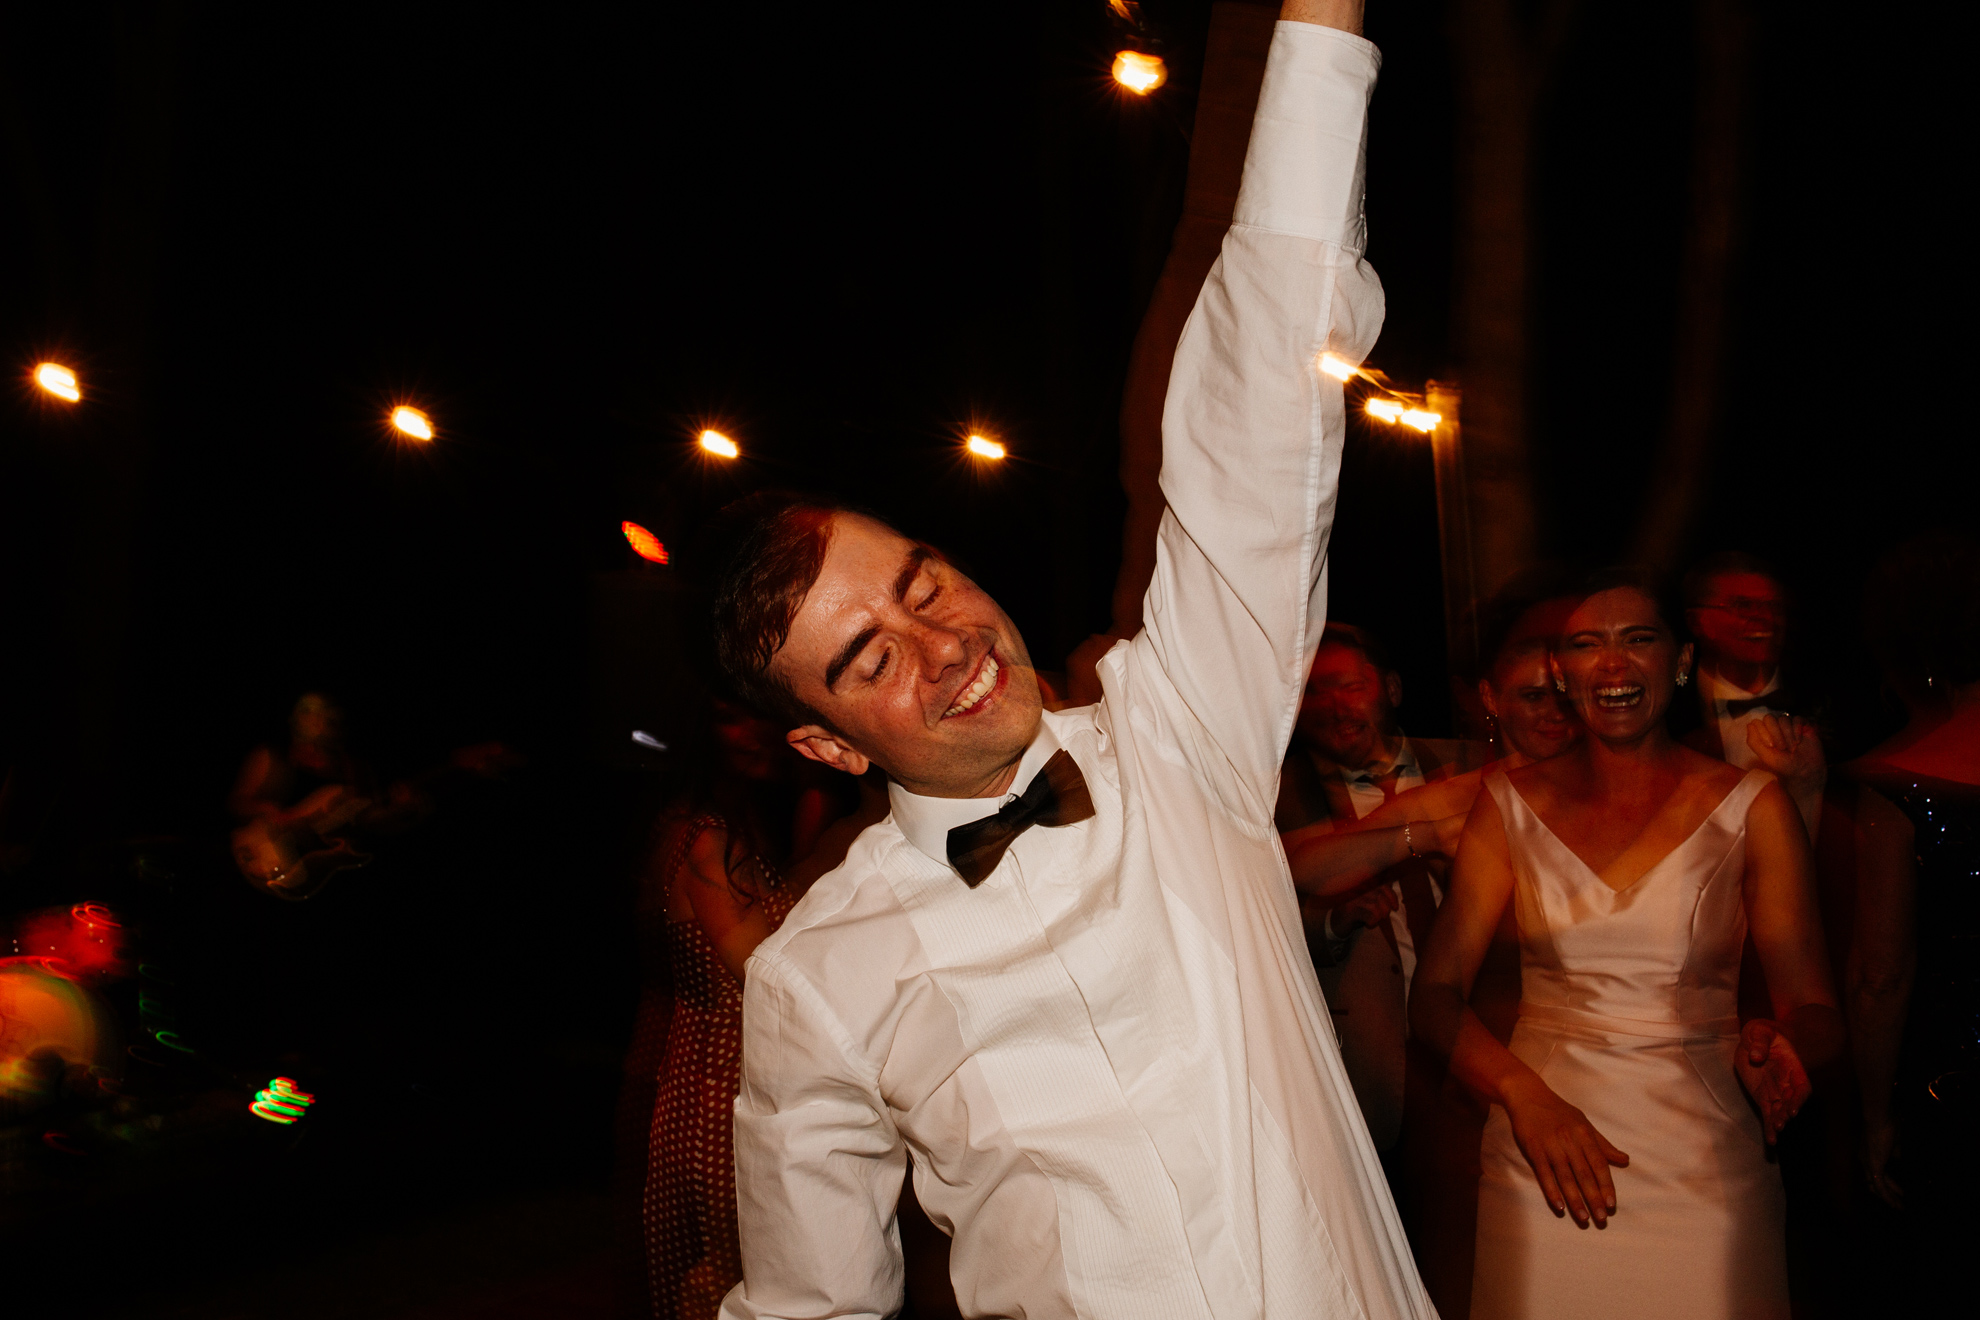 095-Chloe_Joe_Rockhampton_Wedding.jpg